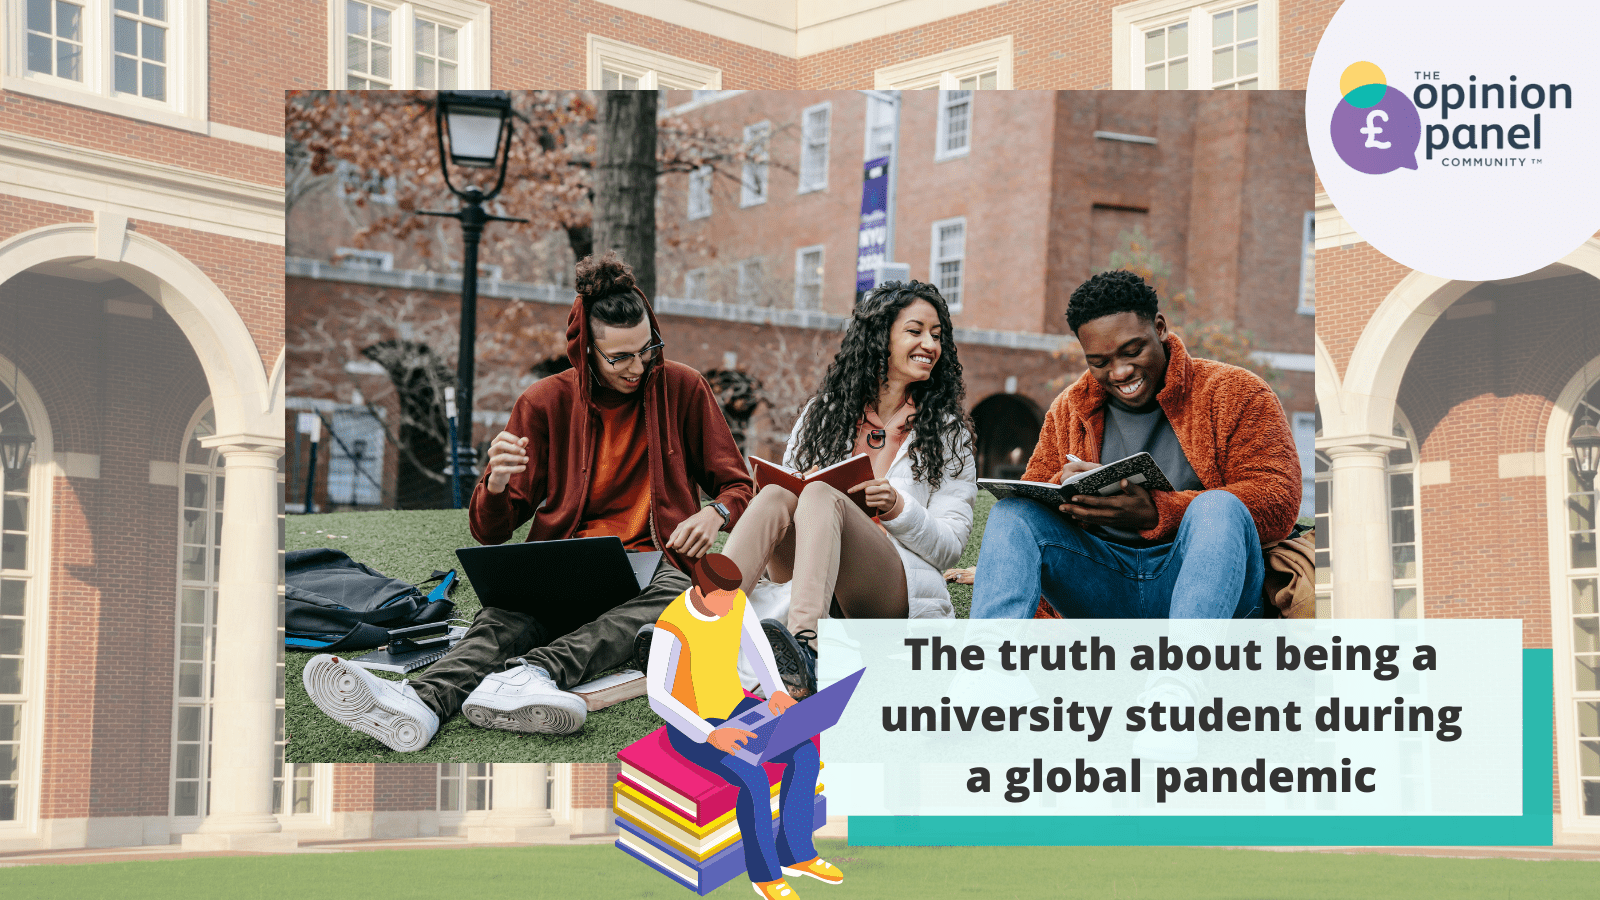 Student global pandemic title image